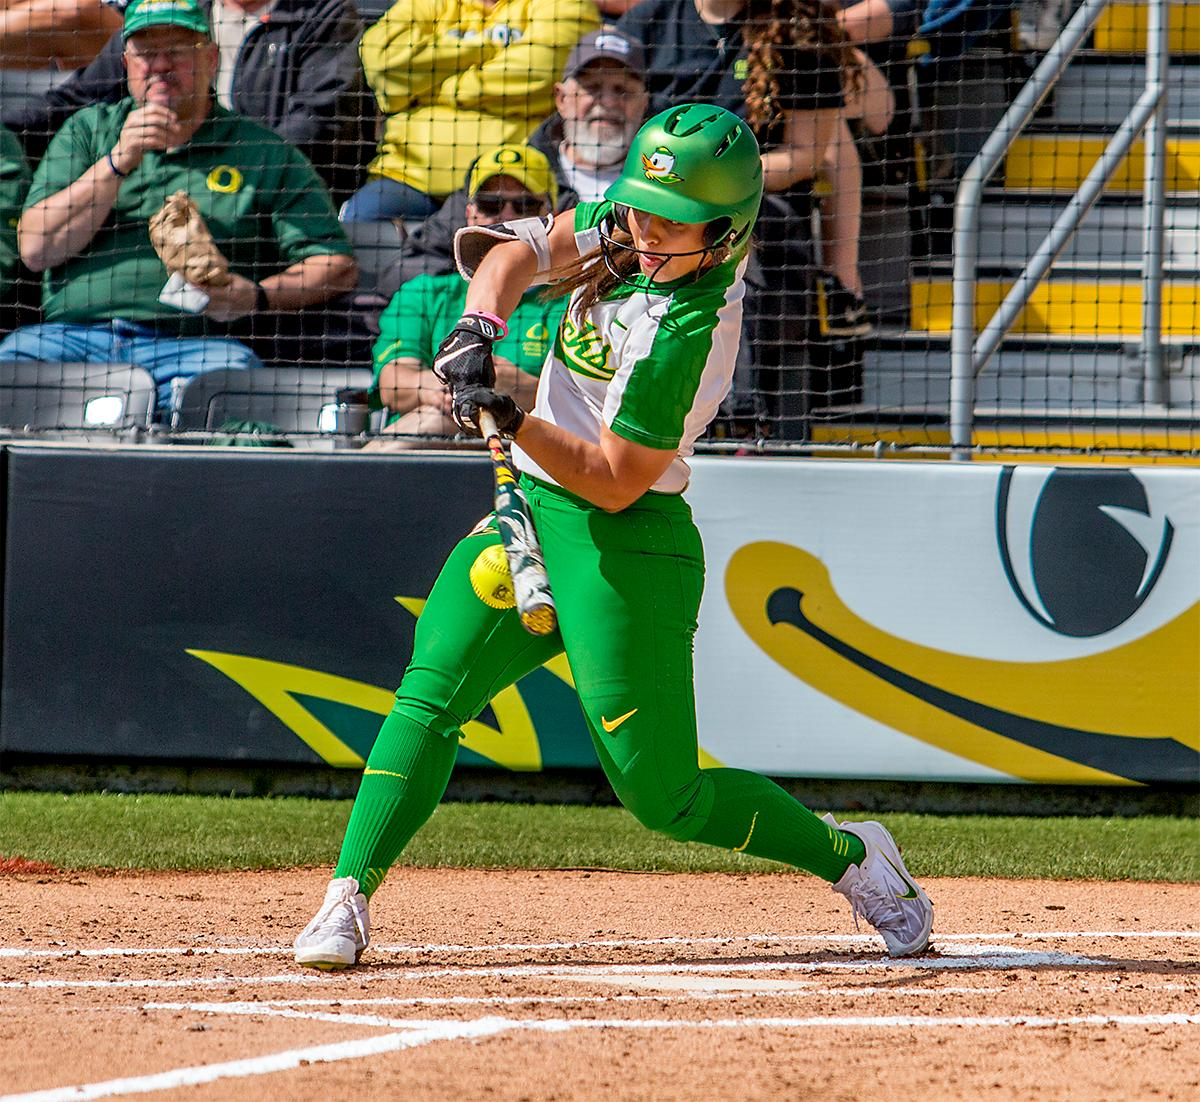 The Duck's Mia Camuso (#7) connects with the ball in a downward trajectory. The Oregon Ducks Softball team took their third win over the Arizona Sun Devils, 1-0, in the final game of the weekends series that saw the game go into an eighth inning before the Duck?s Mia Camuso (#7) scored a hit allowing teammate Haley Cruse (#26) to run into home plate for a point. The Ducks are now 33-0 this season and will next play a double header against Portland State on Tuesday, April 4 at Jane Sanders Stadium. Photo by August Frank, Oregon News Lab